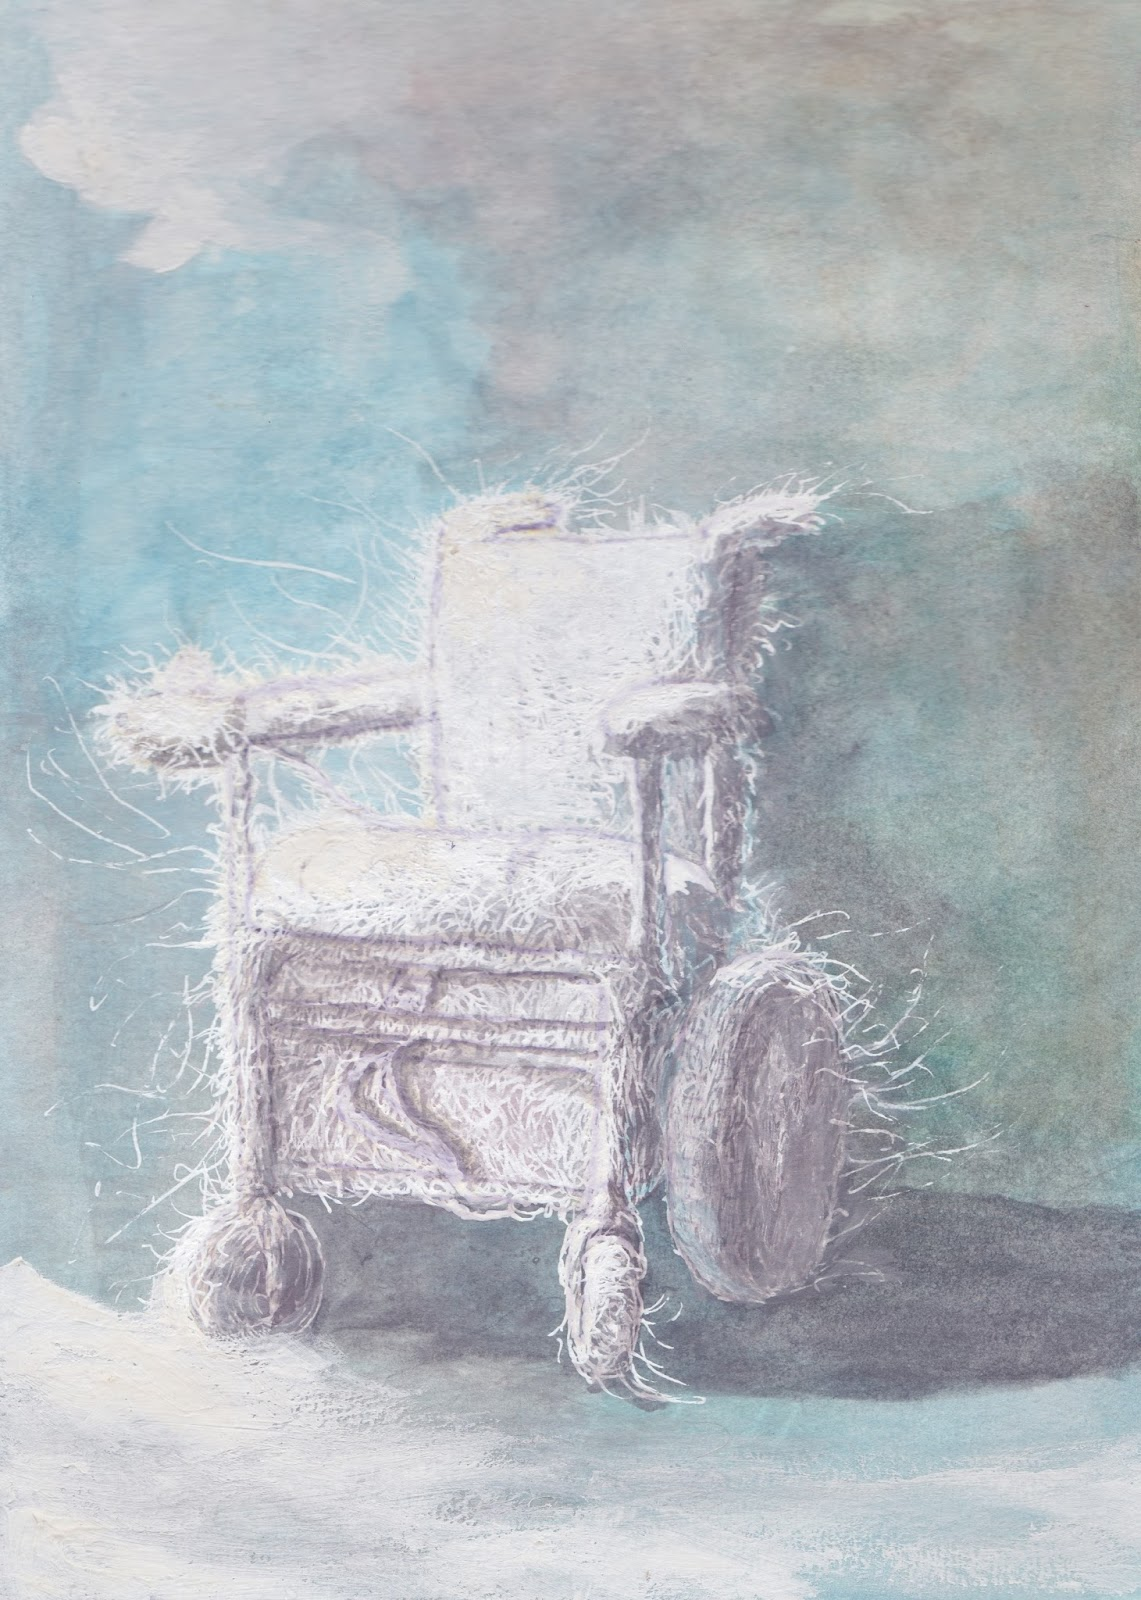 Sunaura Taylor, Arctic Wheelchair, 2013. Watercolor and Ink on Paper, 7